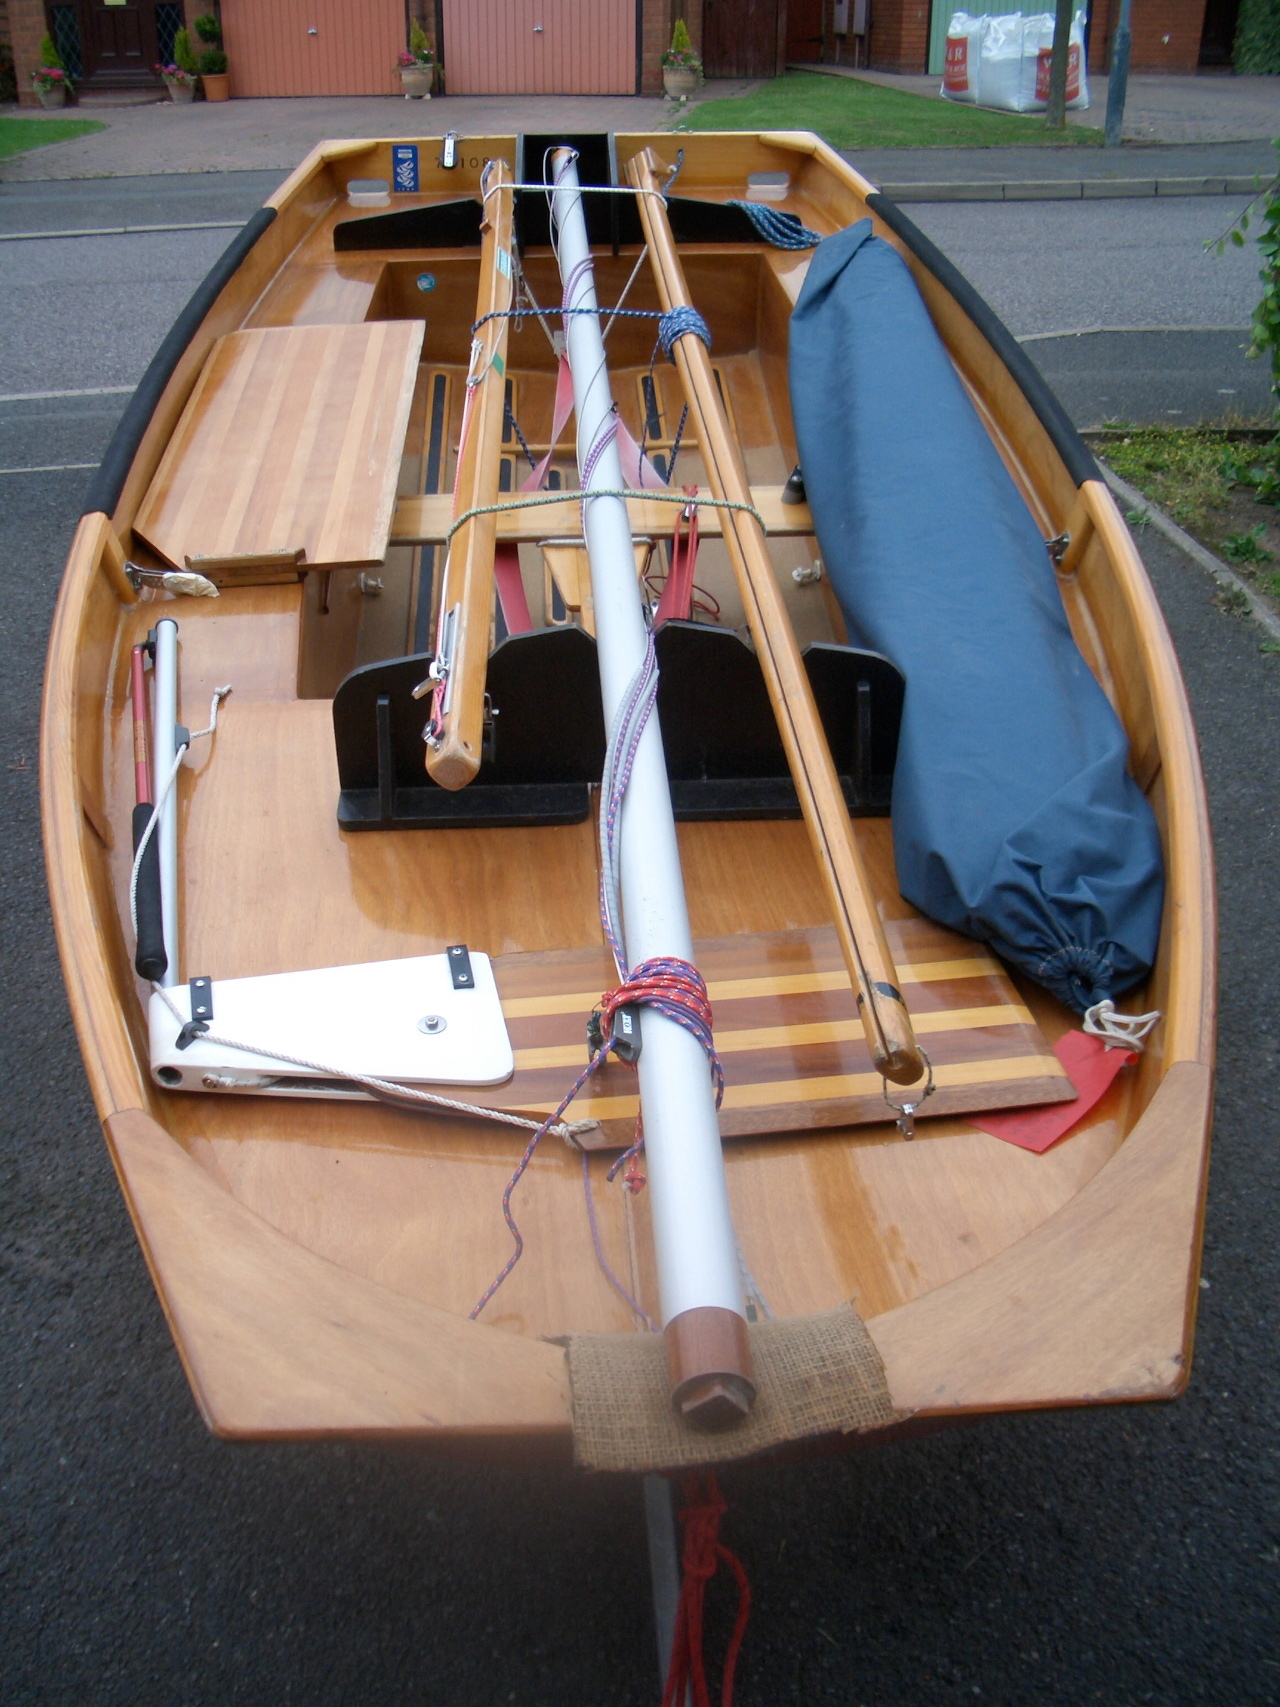 A red wooden Mirror dinghy with mast down on a driveway, bow towards the camera